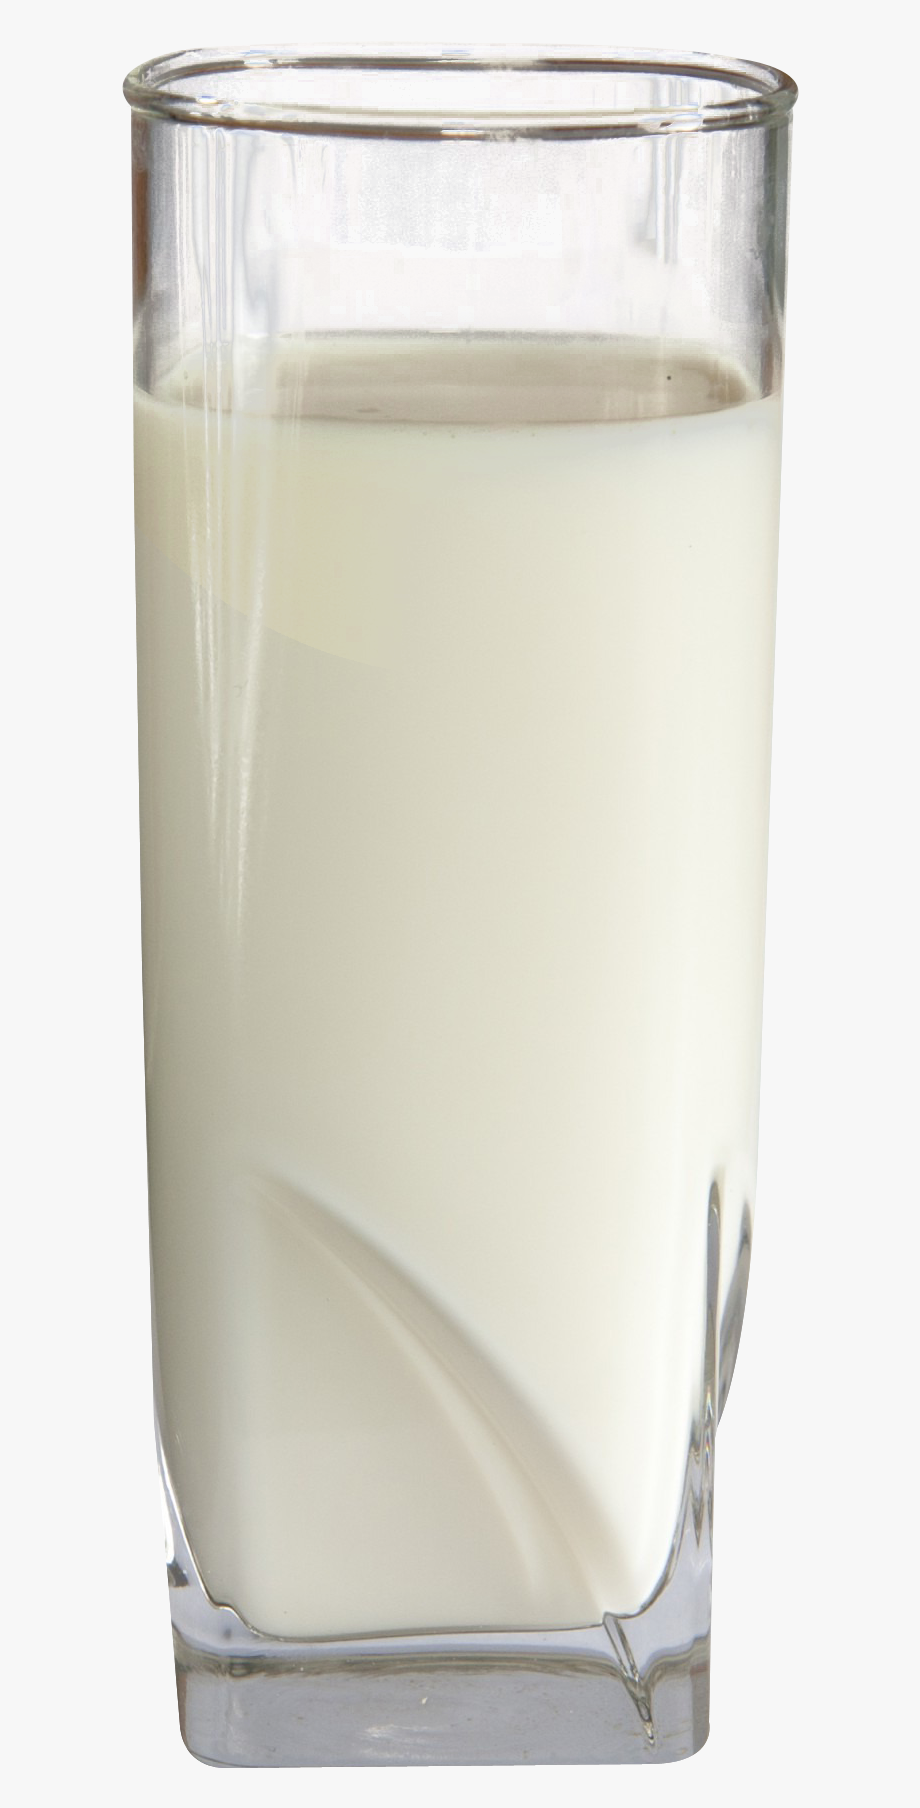 Milk clipart galss. Glass png image in